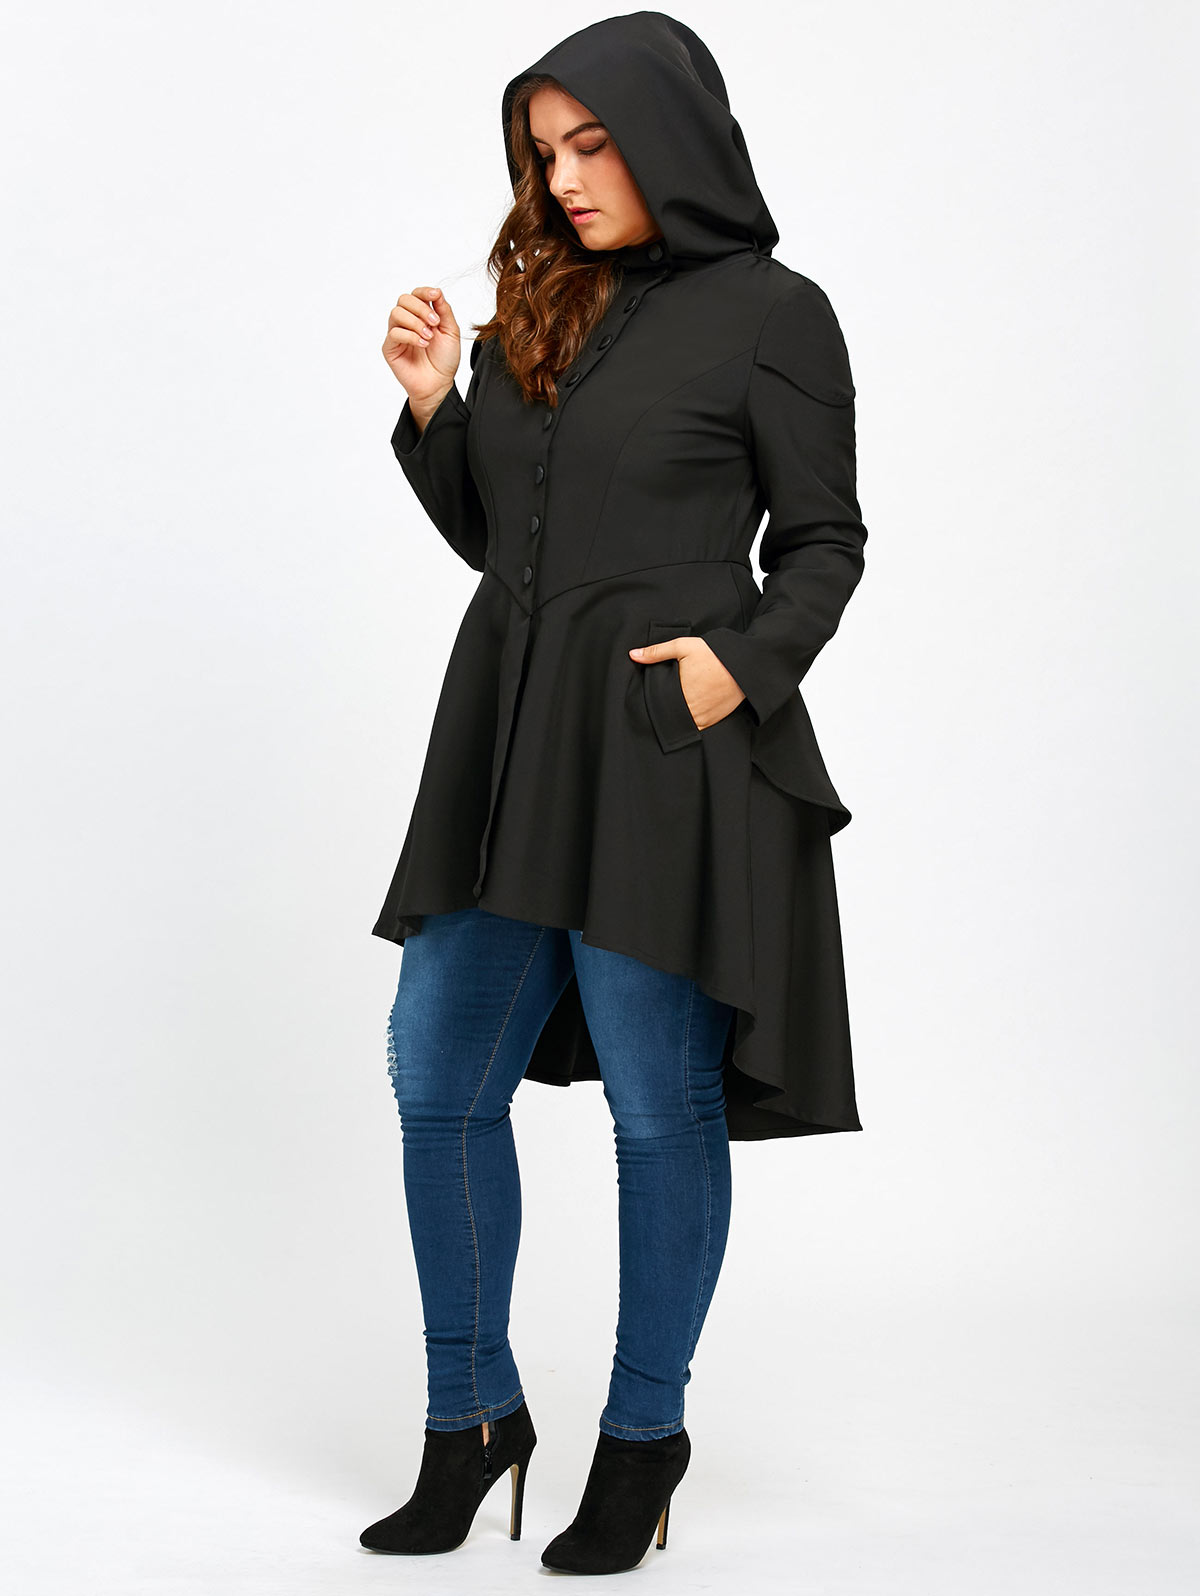 Gamiss Trendy Plus Size Lace Up High Low Hooded Coat Female Halloween Outwear Autumn Coat Women Layered Gothic High Waist Coats